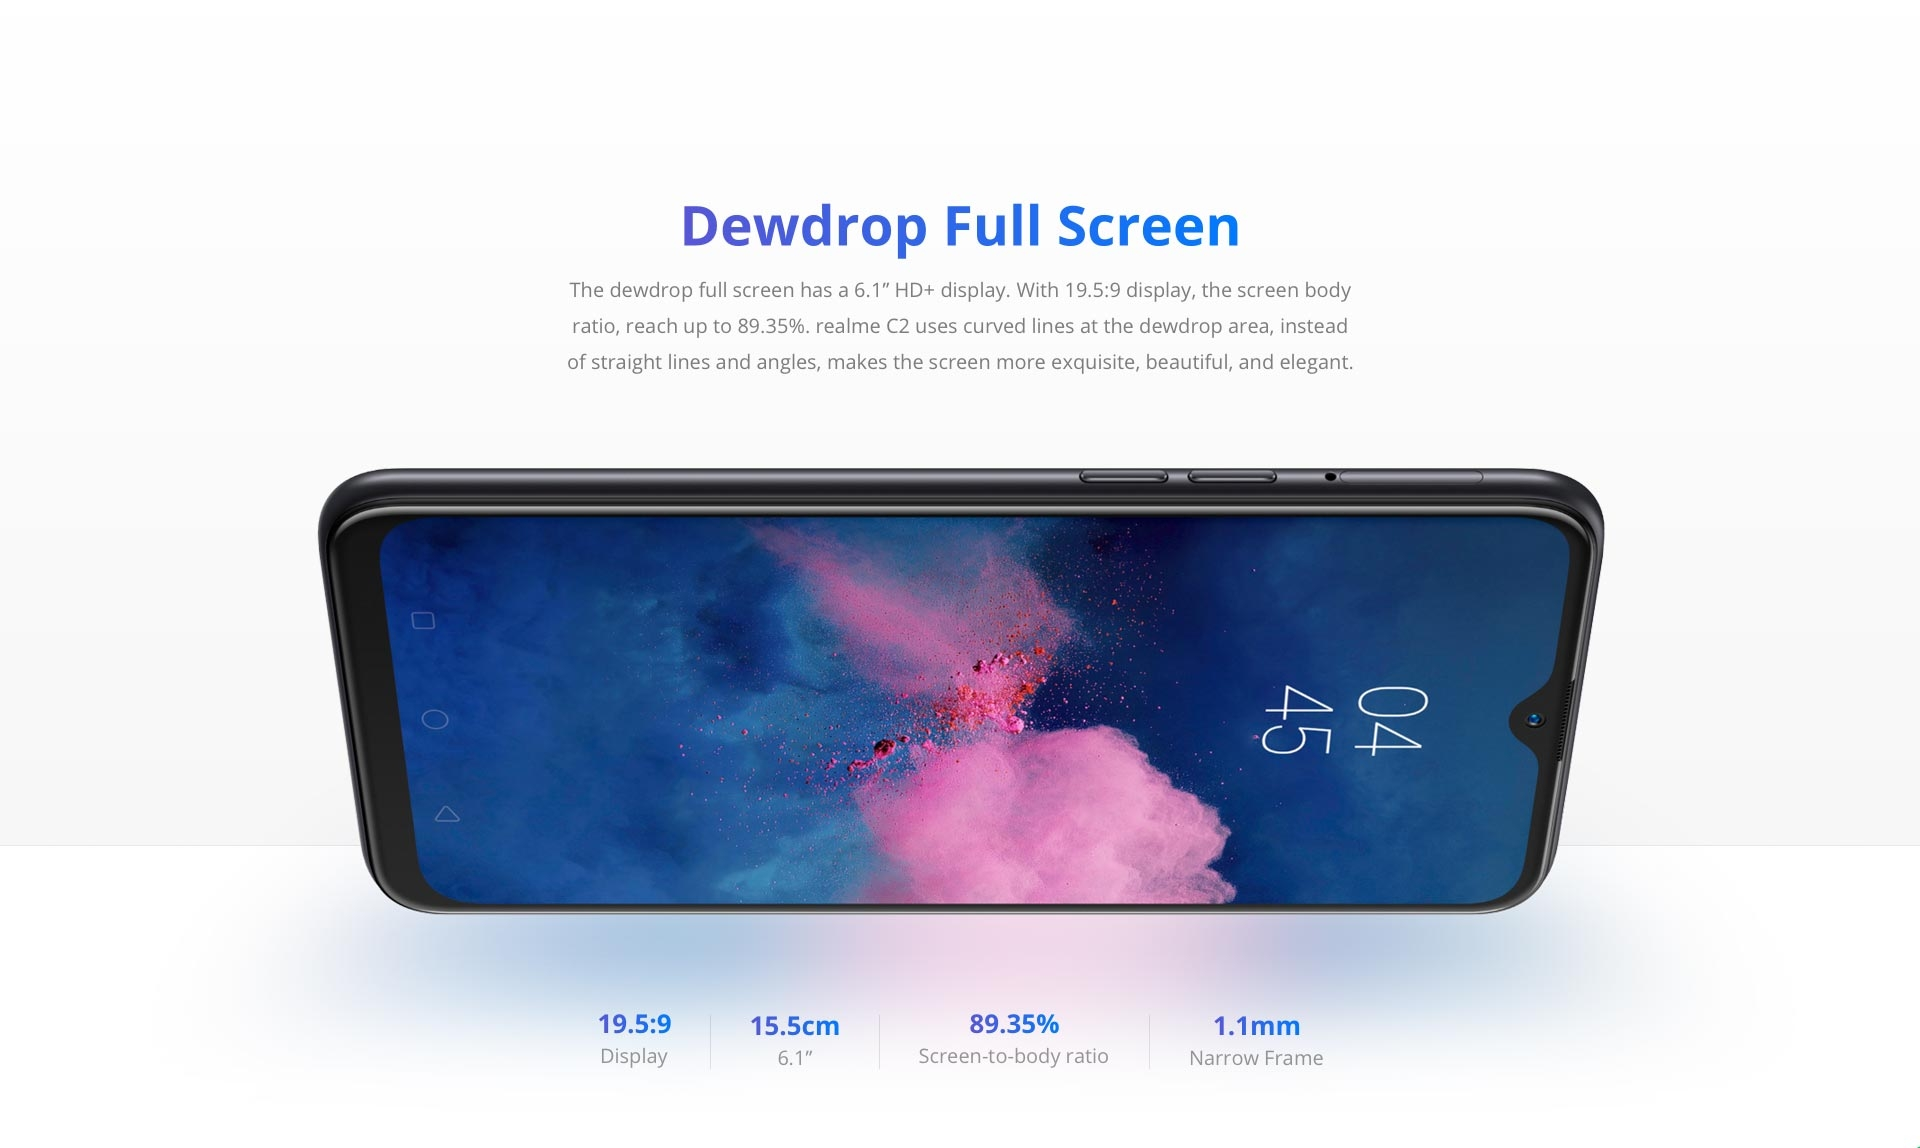 Shop New Realme C2 Online - Buy C2 at Best Price Today